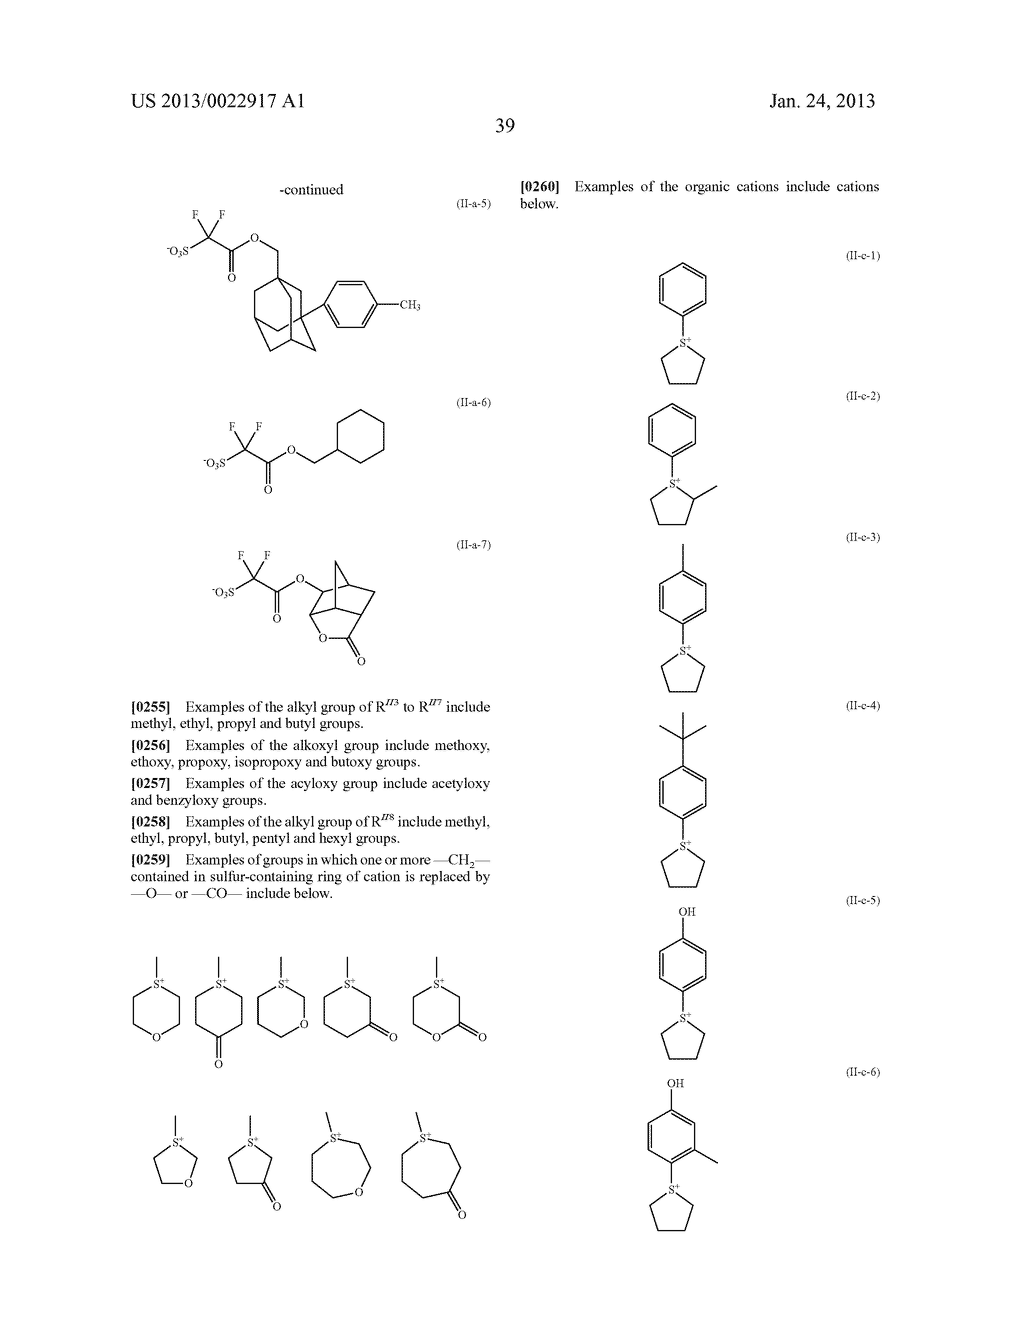 RESIST COMPOSITION AND METHOD FOR PRODUCING RESIST PATTERN - diagram, schematic, and image 40